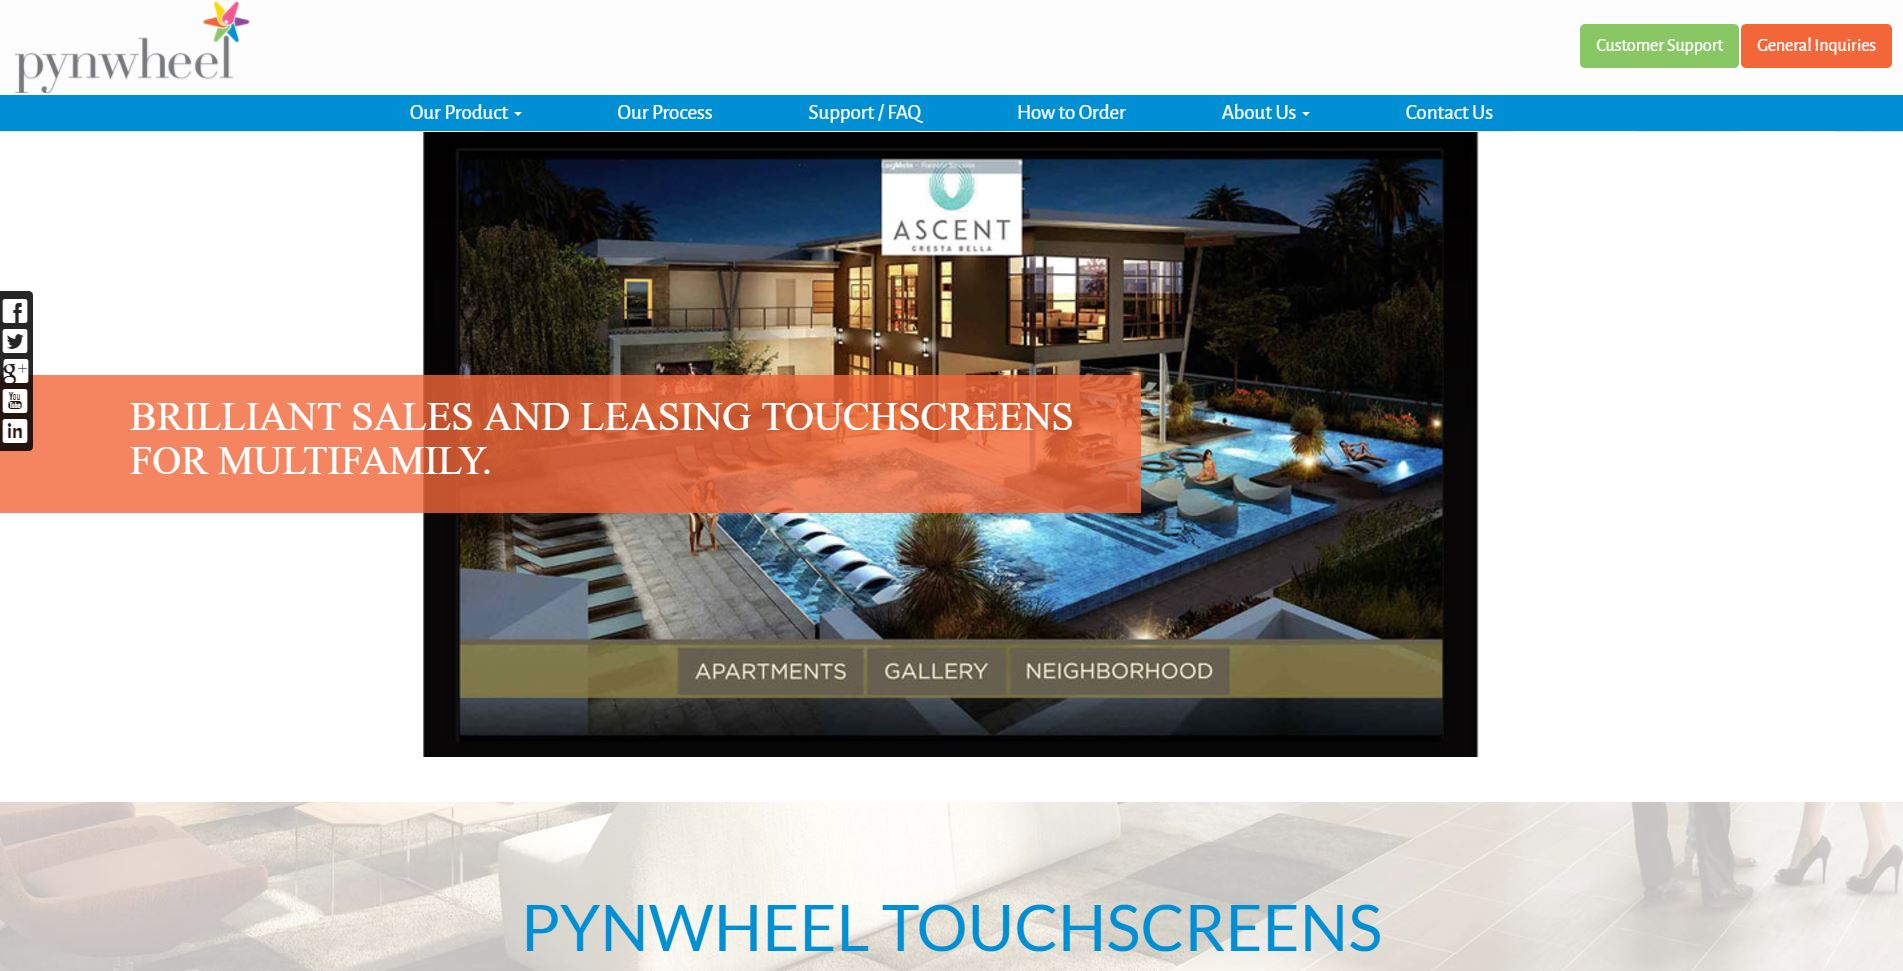 New Website Launch: Pynwheel